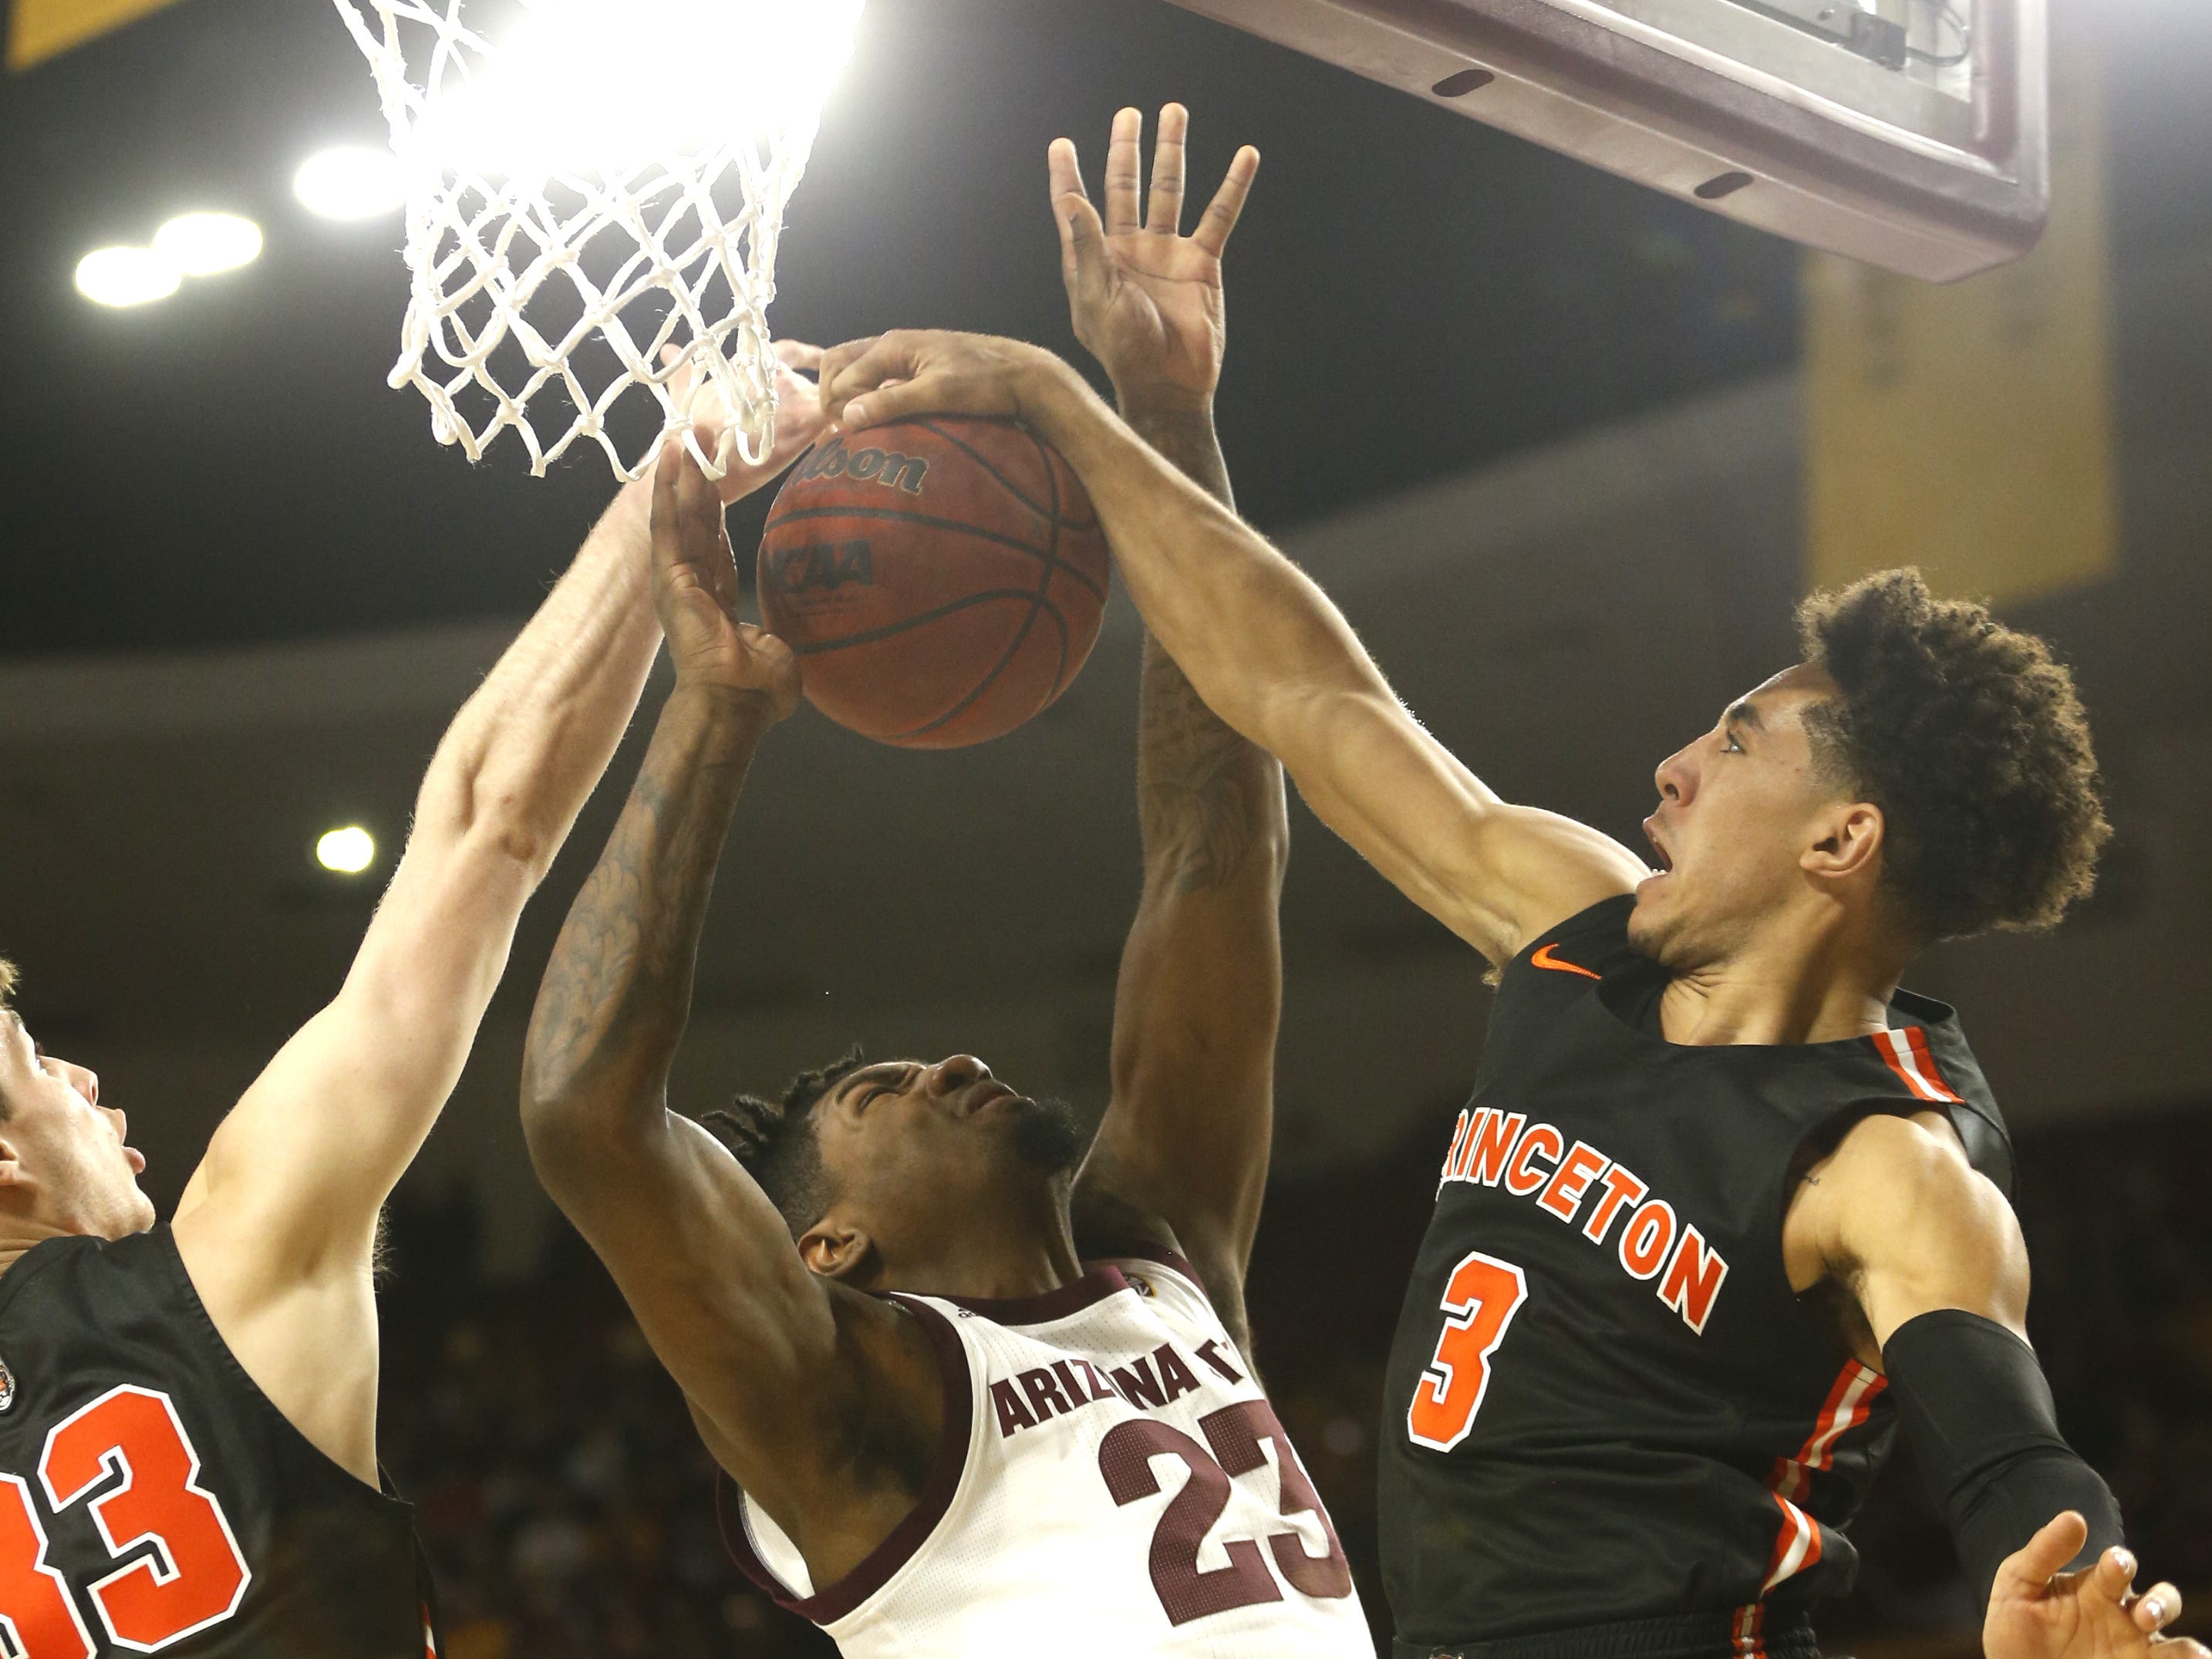 Princeton's Devin Cannady (3) blocks a shot on ASU's Romello White (23) during the first half at Wells Fargo Arena in Tempe, Ariz. on December 29, 2018.